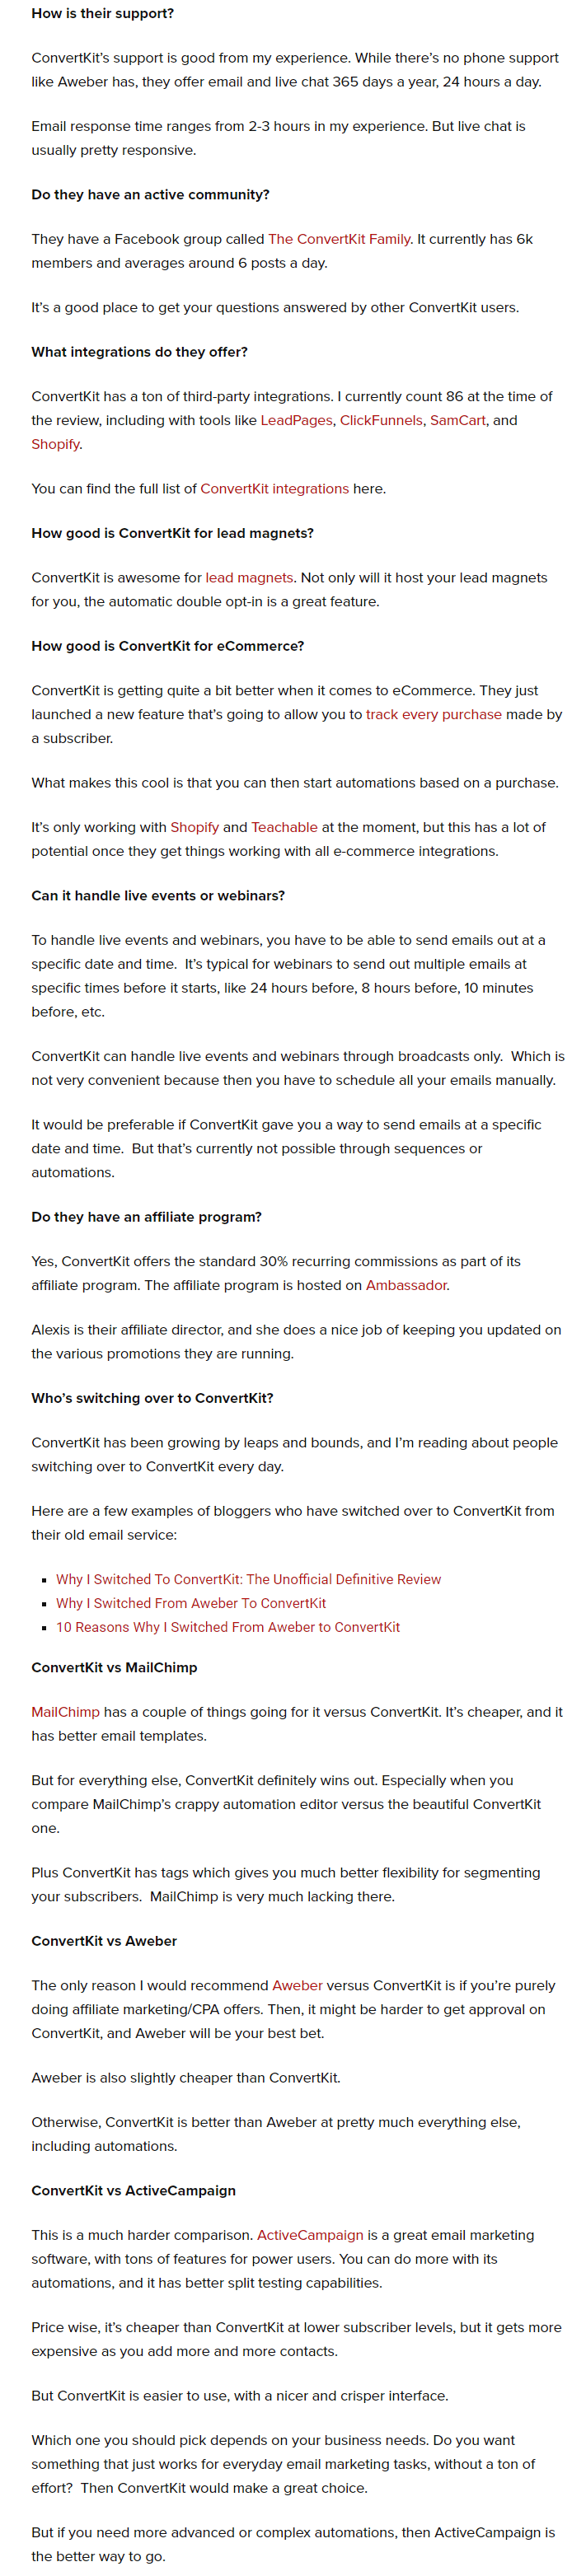 ConvertKit Review (8)